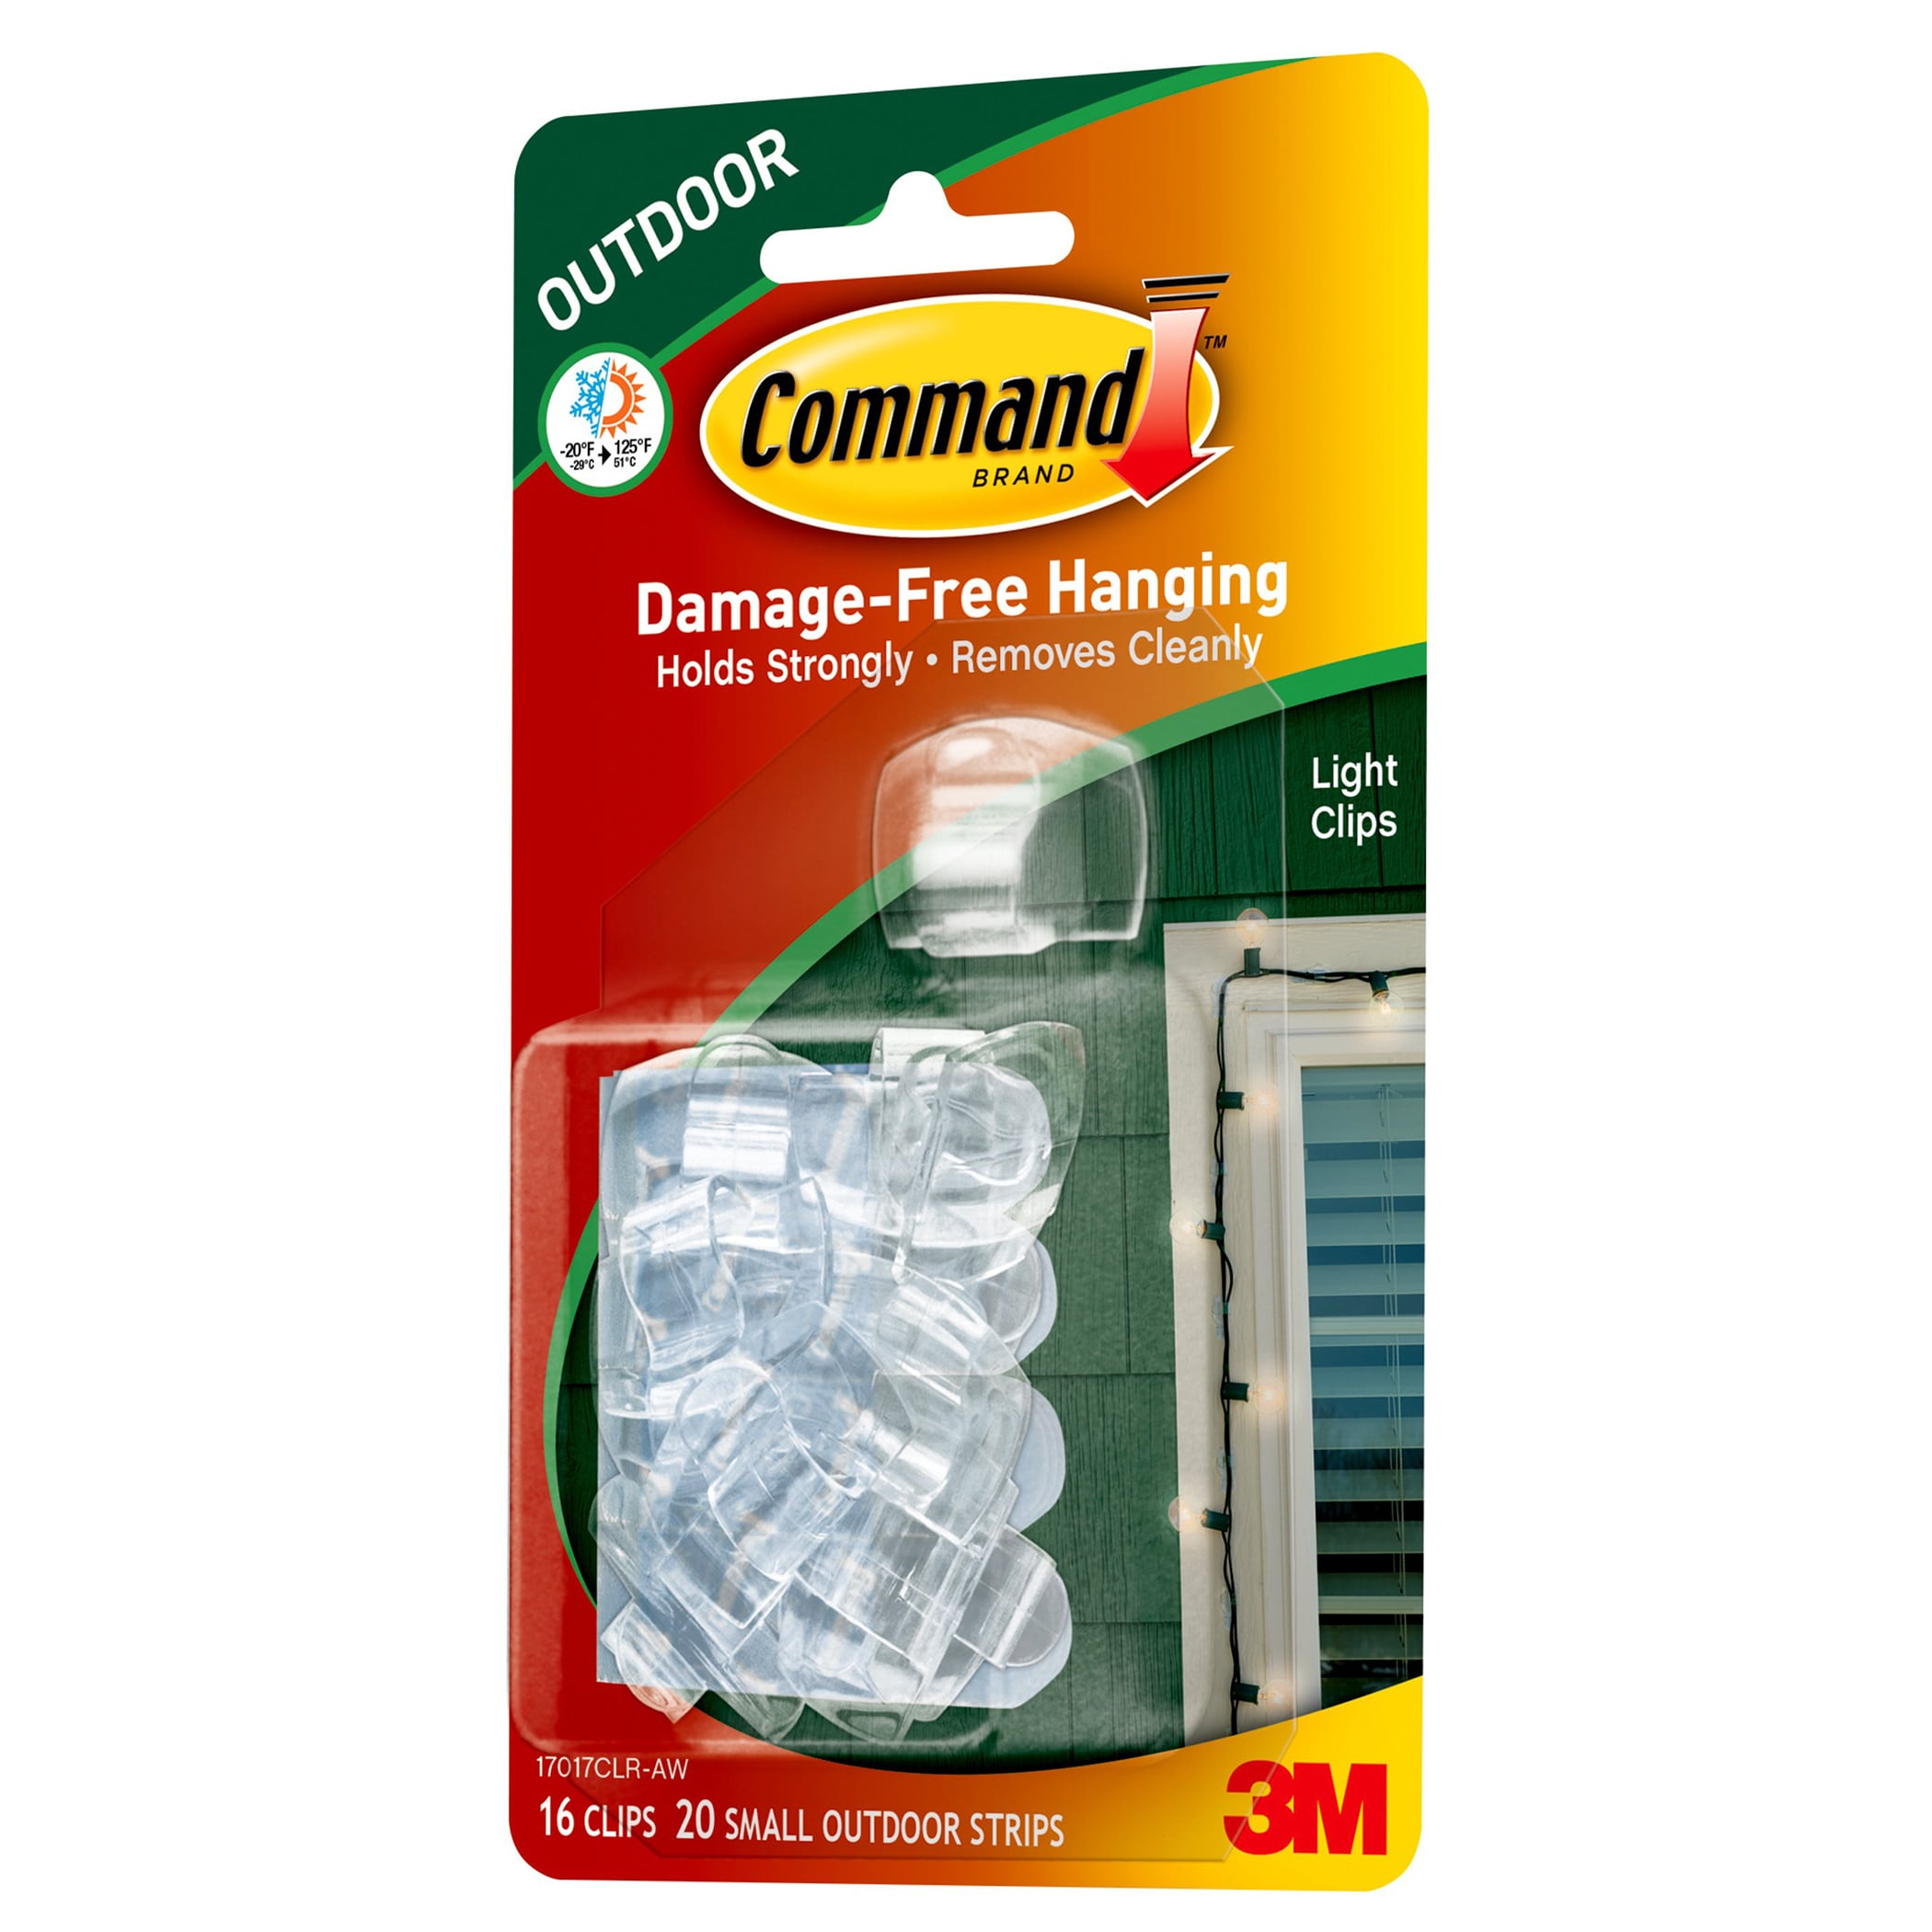 Command Arms Strips 17017CLR-AW Clear Outdoor Light Clips...